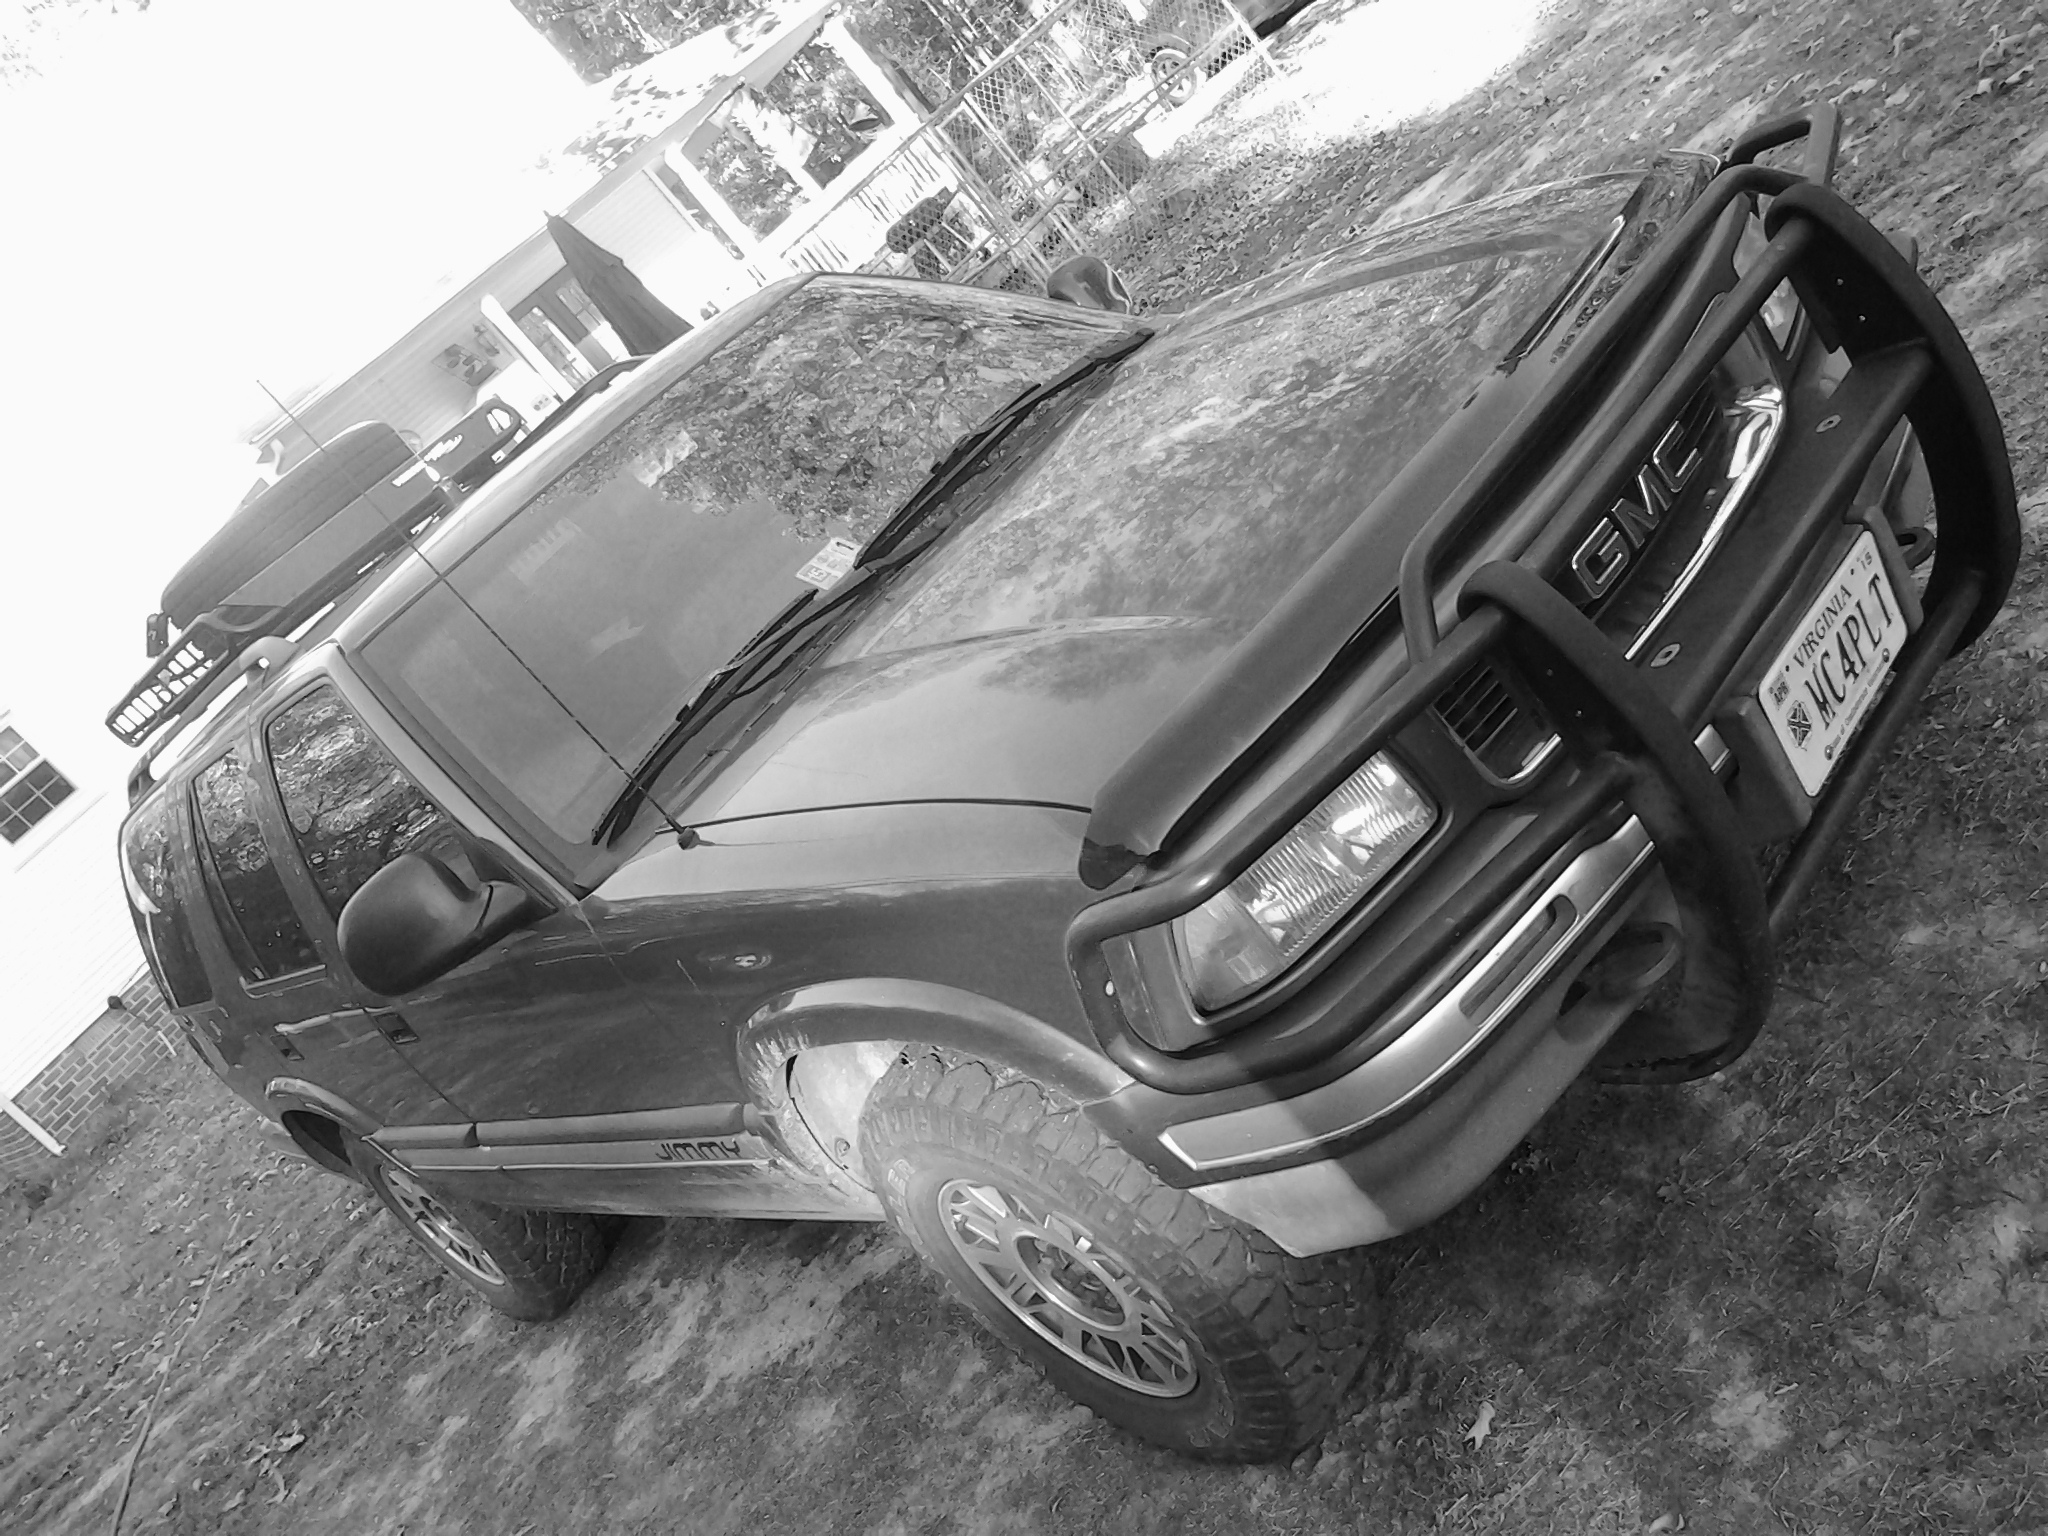 Another ndrisk 1995 gmc jimmy post - 19087819